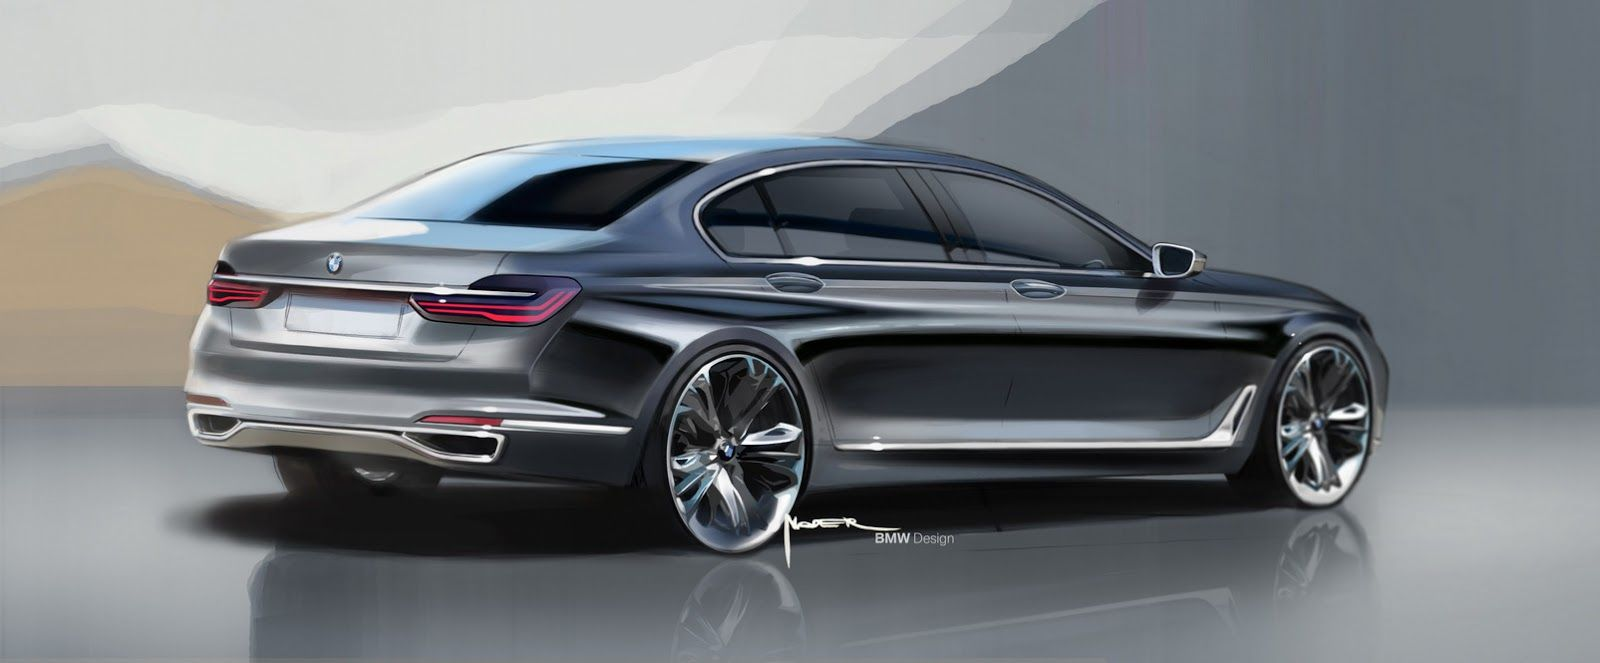 Elegant The All New 2016 BMW 7 Series In 169 Photos And Full Details